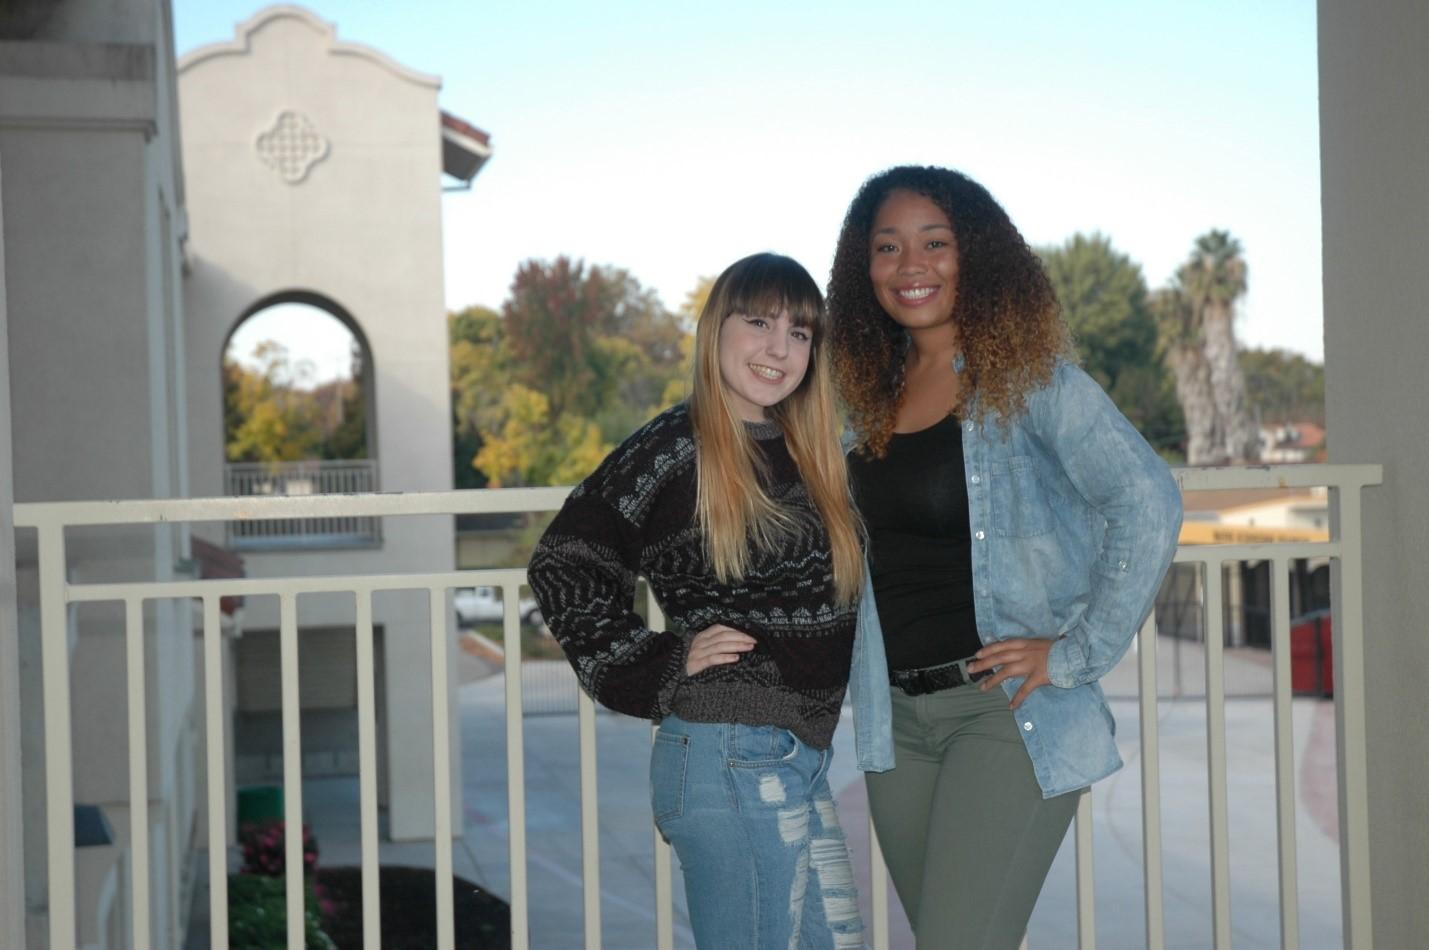 Julia Cross and Destiny Sandridge show off their fall fashion by posing in their cozy apparel. November 4, 2016.